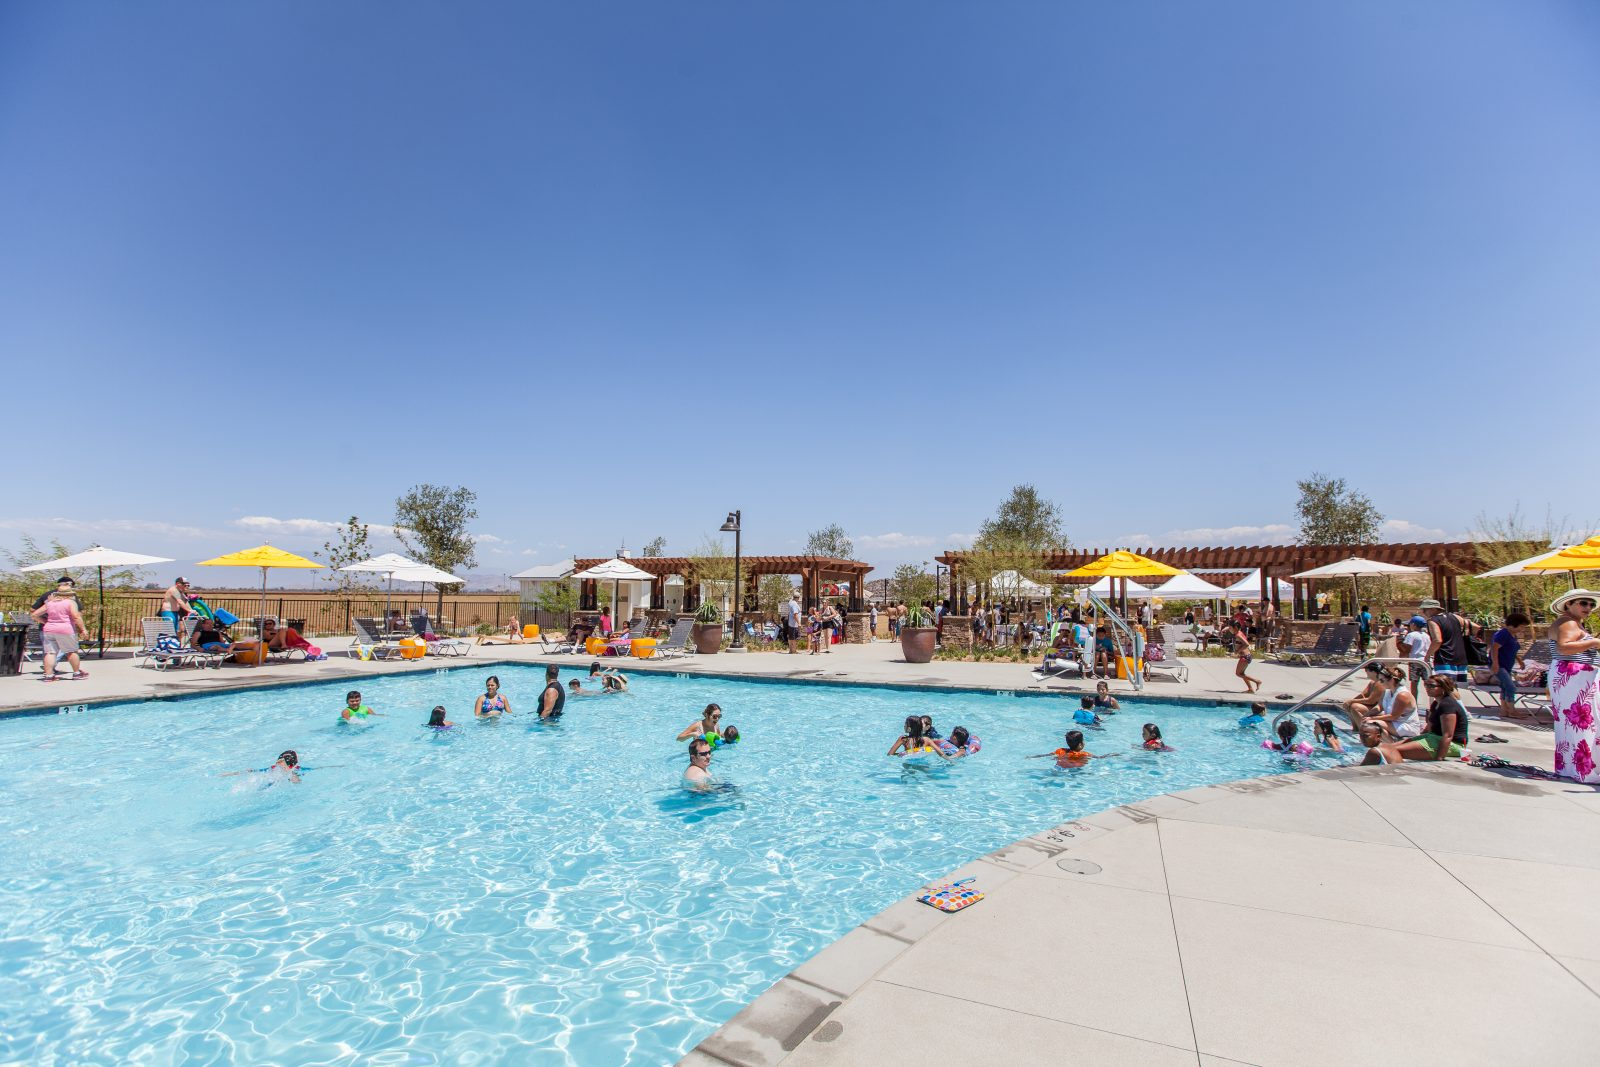 Children in a pool at Audie Murphy Ranch in Menifee, CA | Brookfield Residential